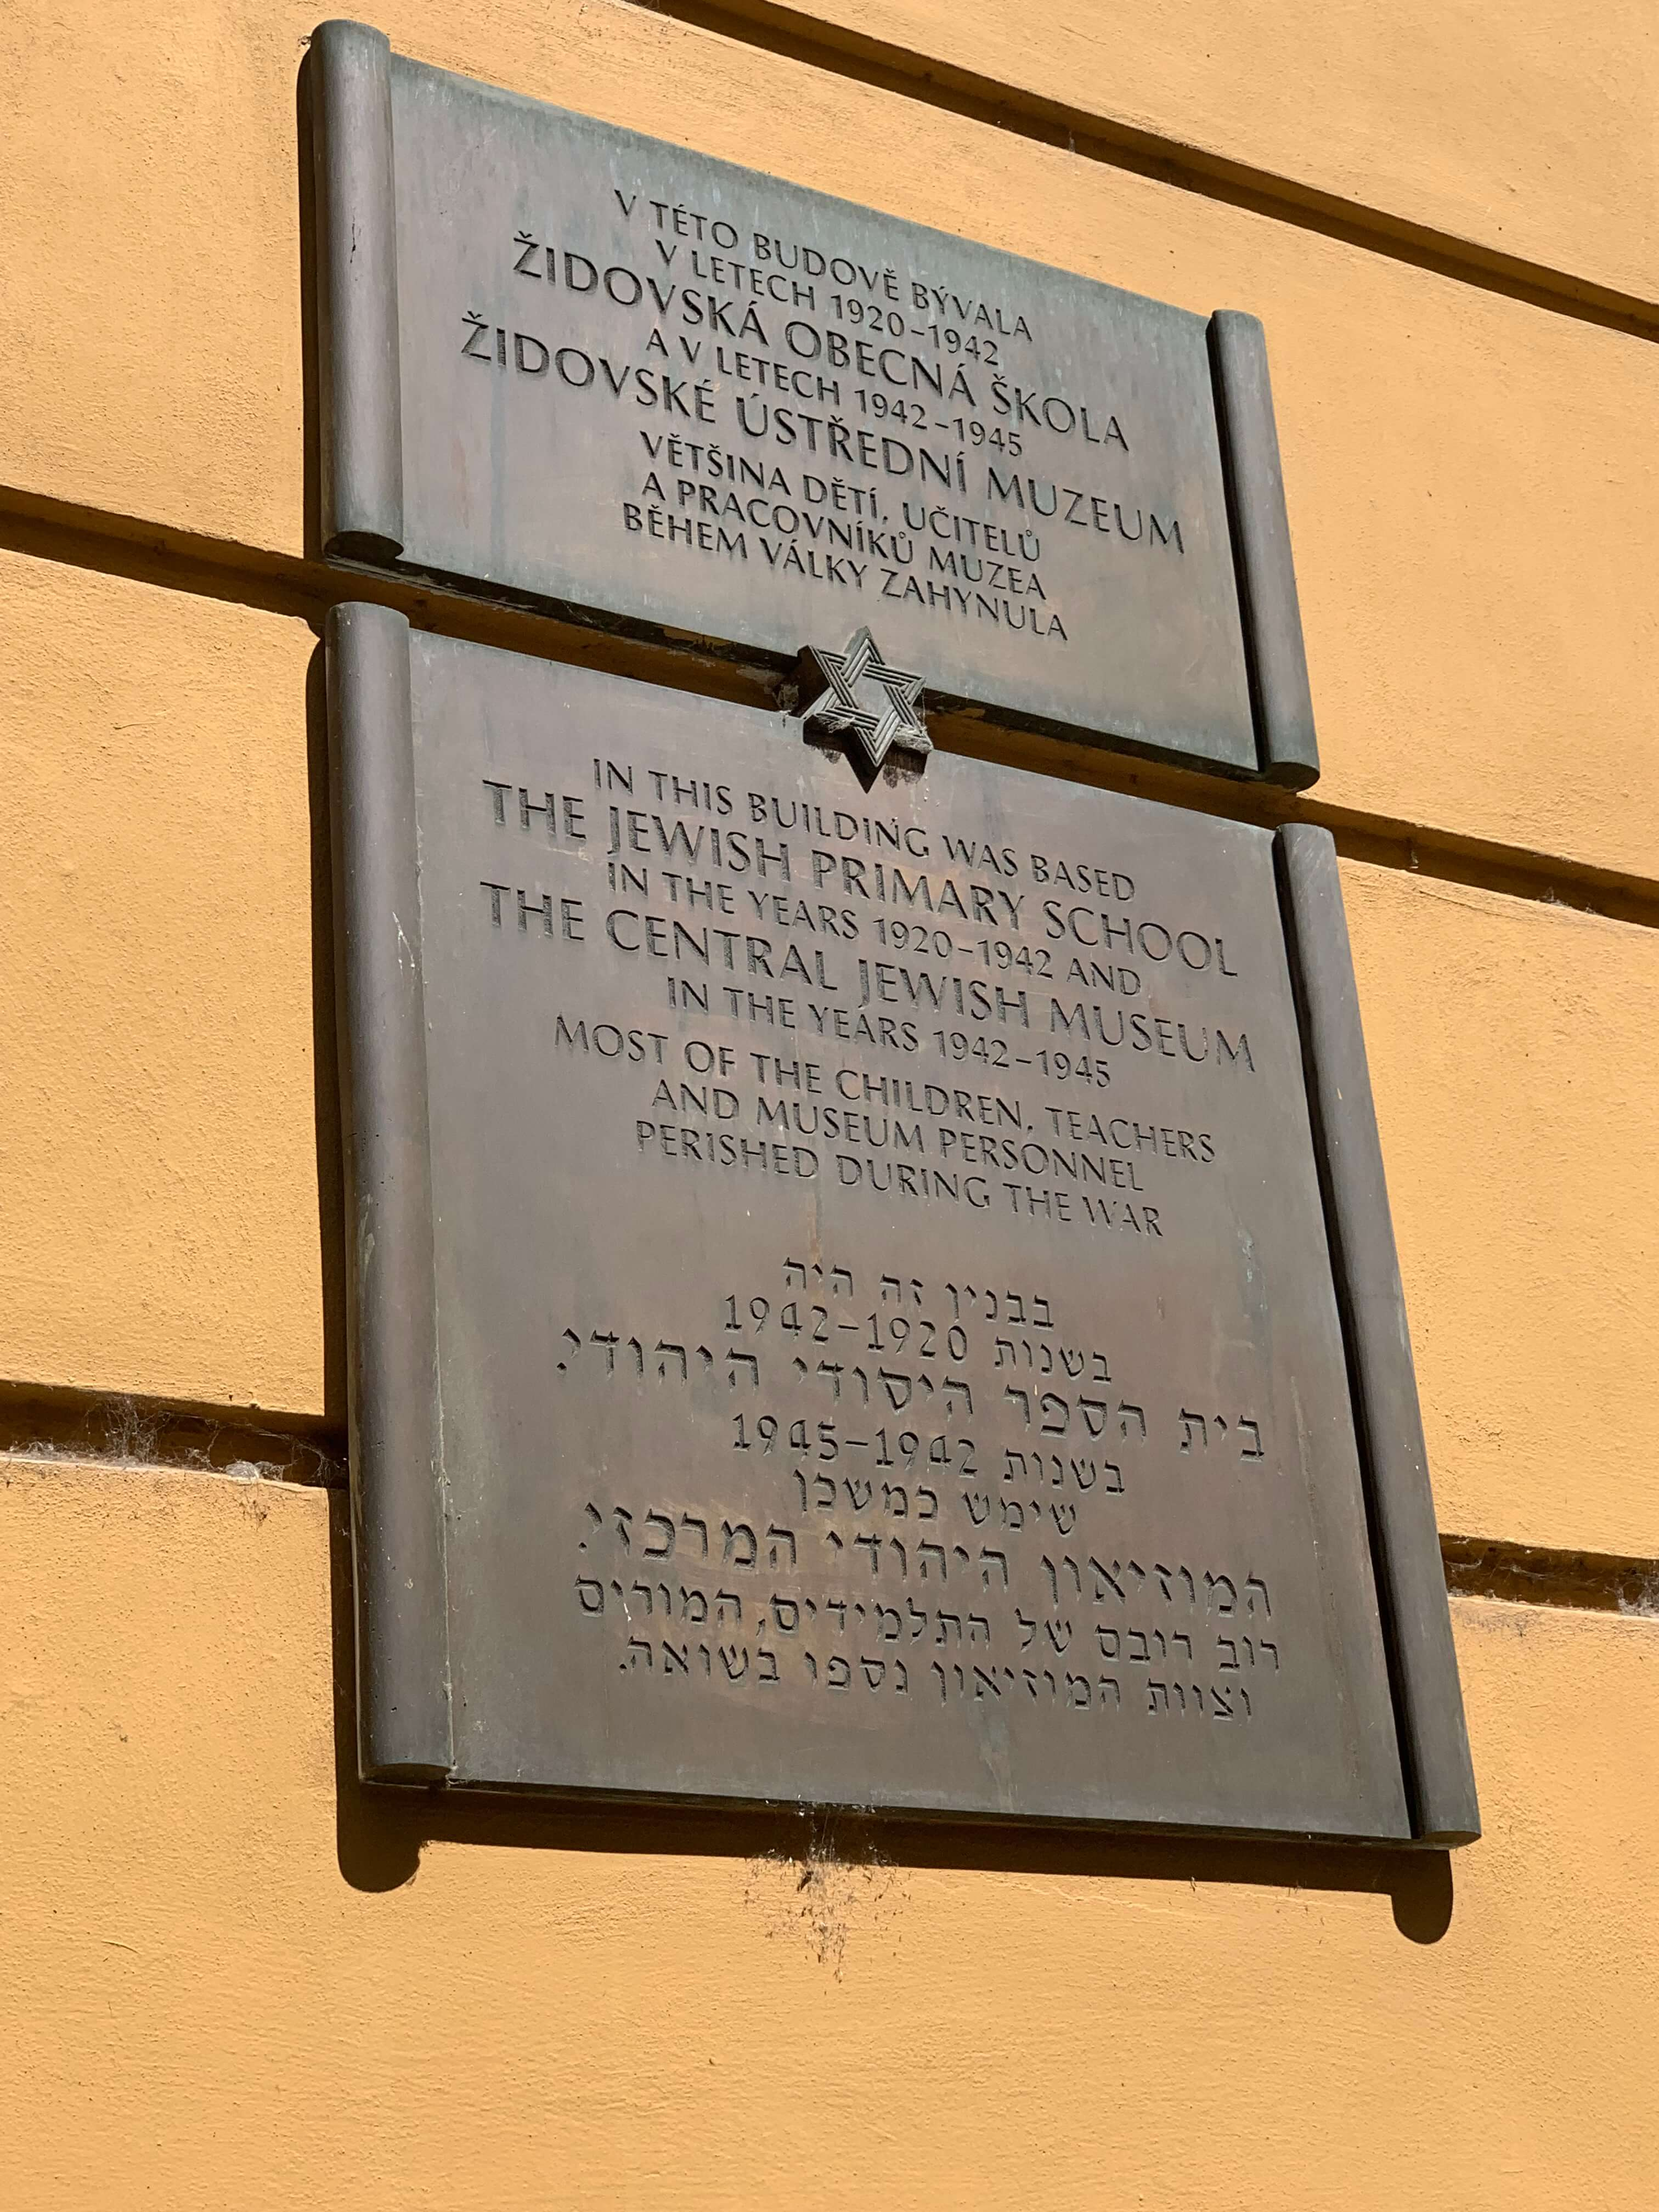 Monument on outside of building commemorating the Jewish students and faculty